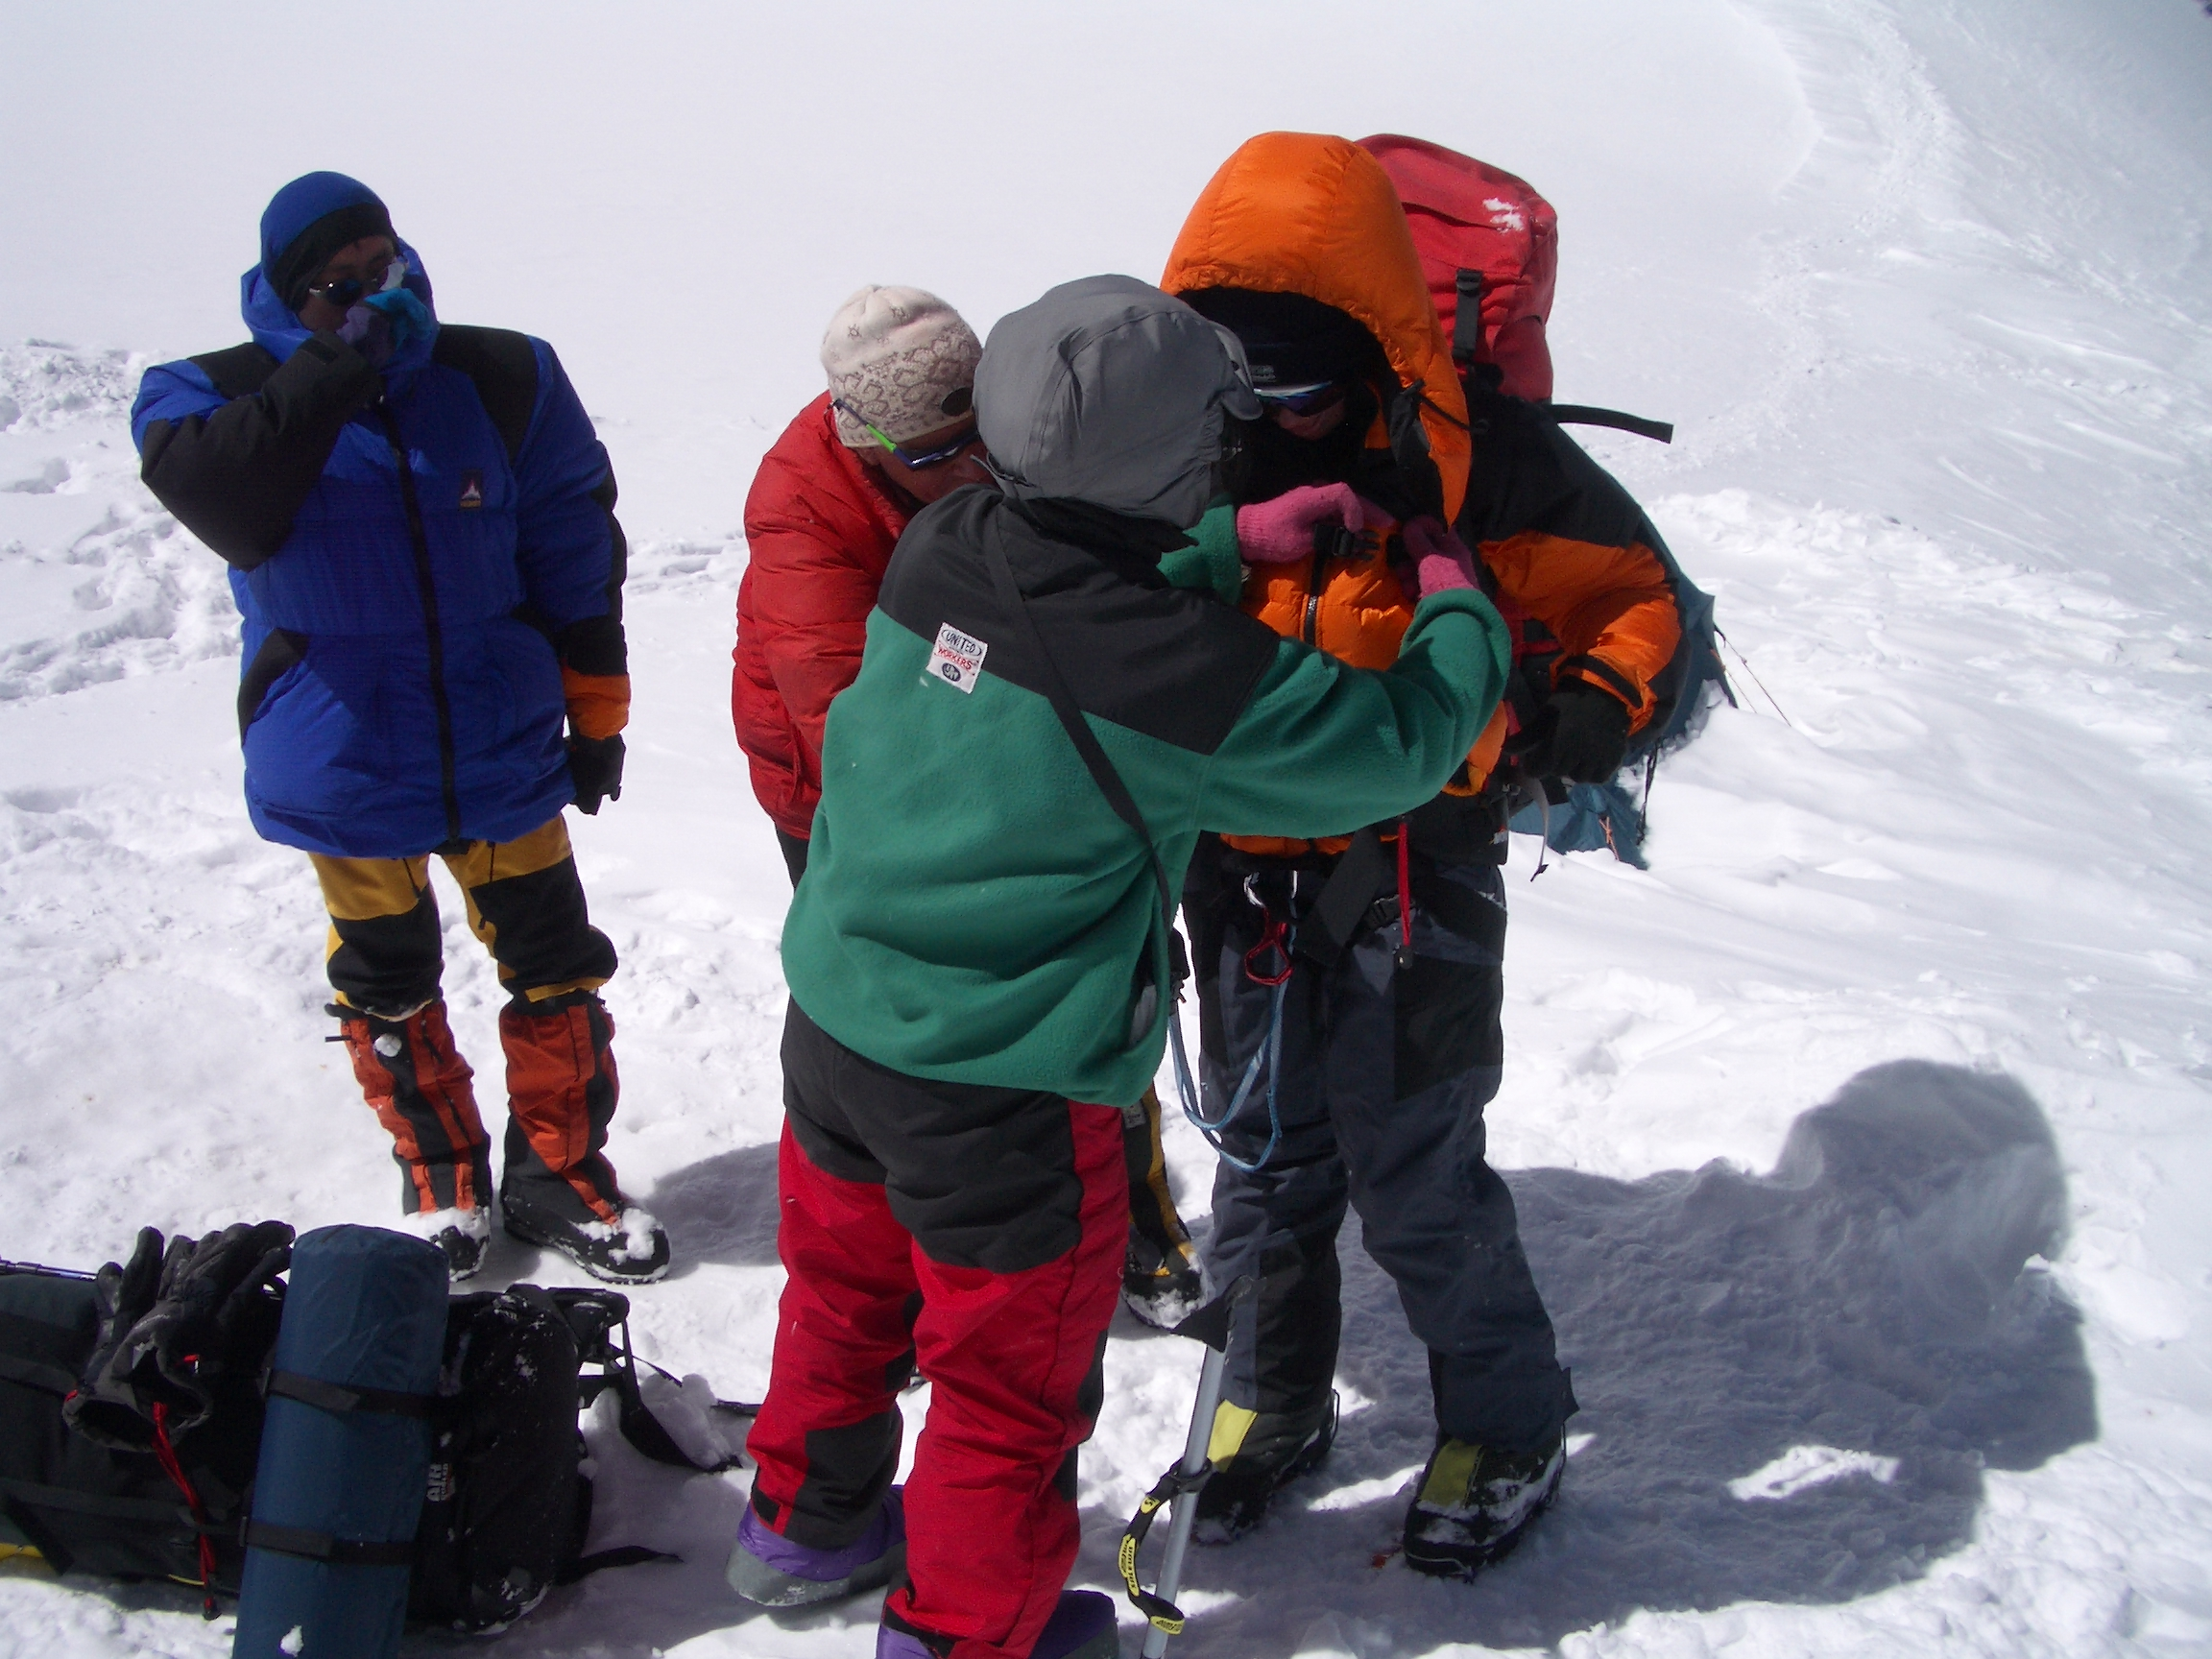 The picture is of Fiona being helped this morning by the Koreans at camp 2 into her down gear, climbing harness & backpack. Sore thumbs make it difficult to clip buckles, tighten straps etc. The generosity of the people here continues to amaze, with the Koreans in particular not stopping at anything. We gave them all our left over gas and food at camp 2.